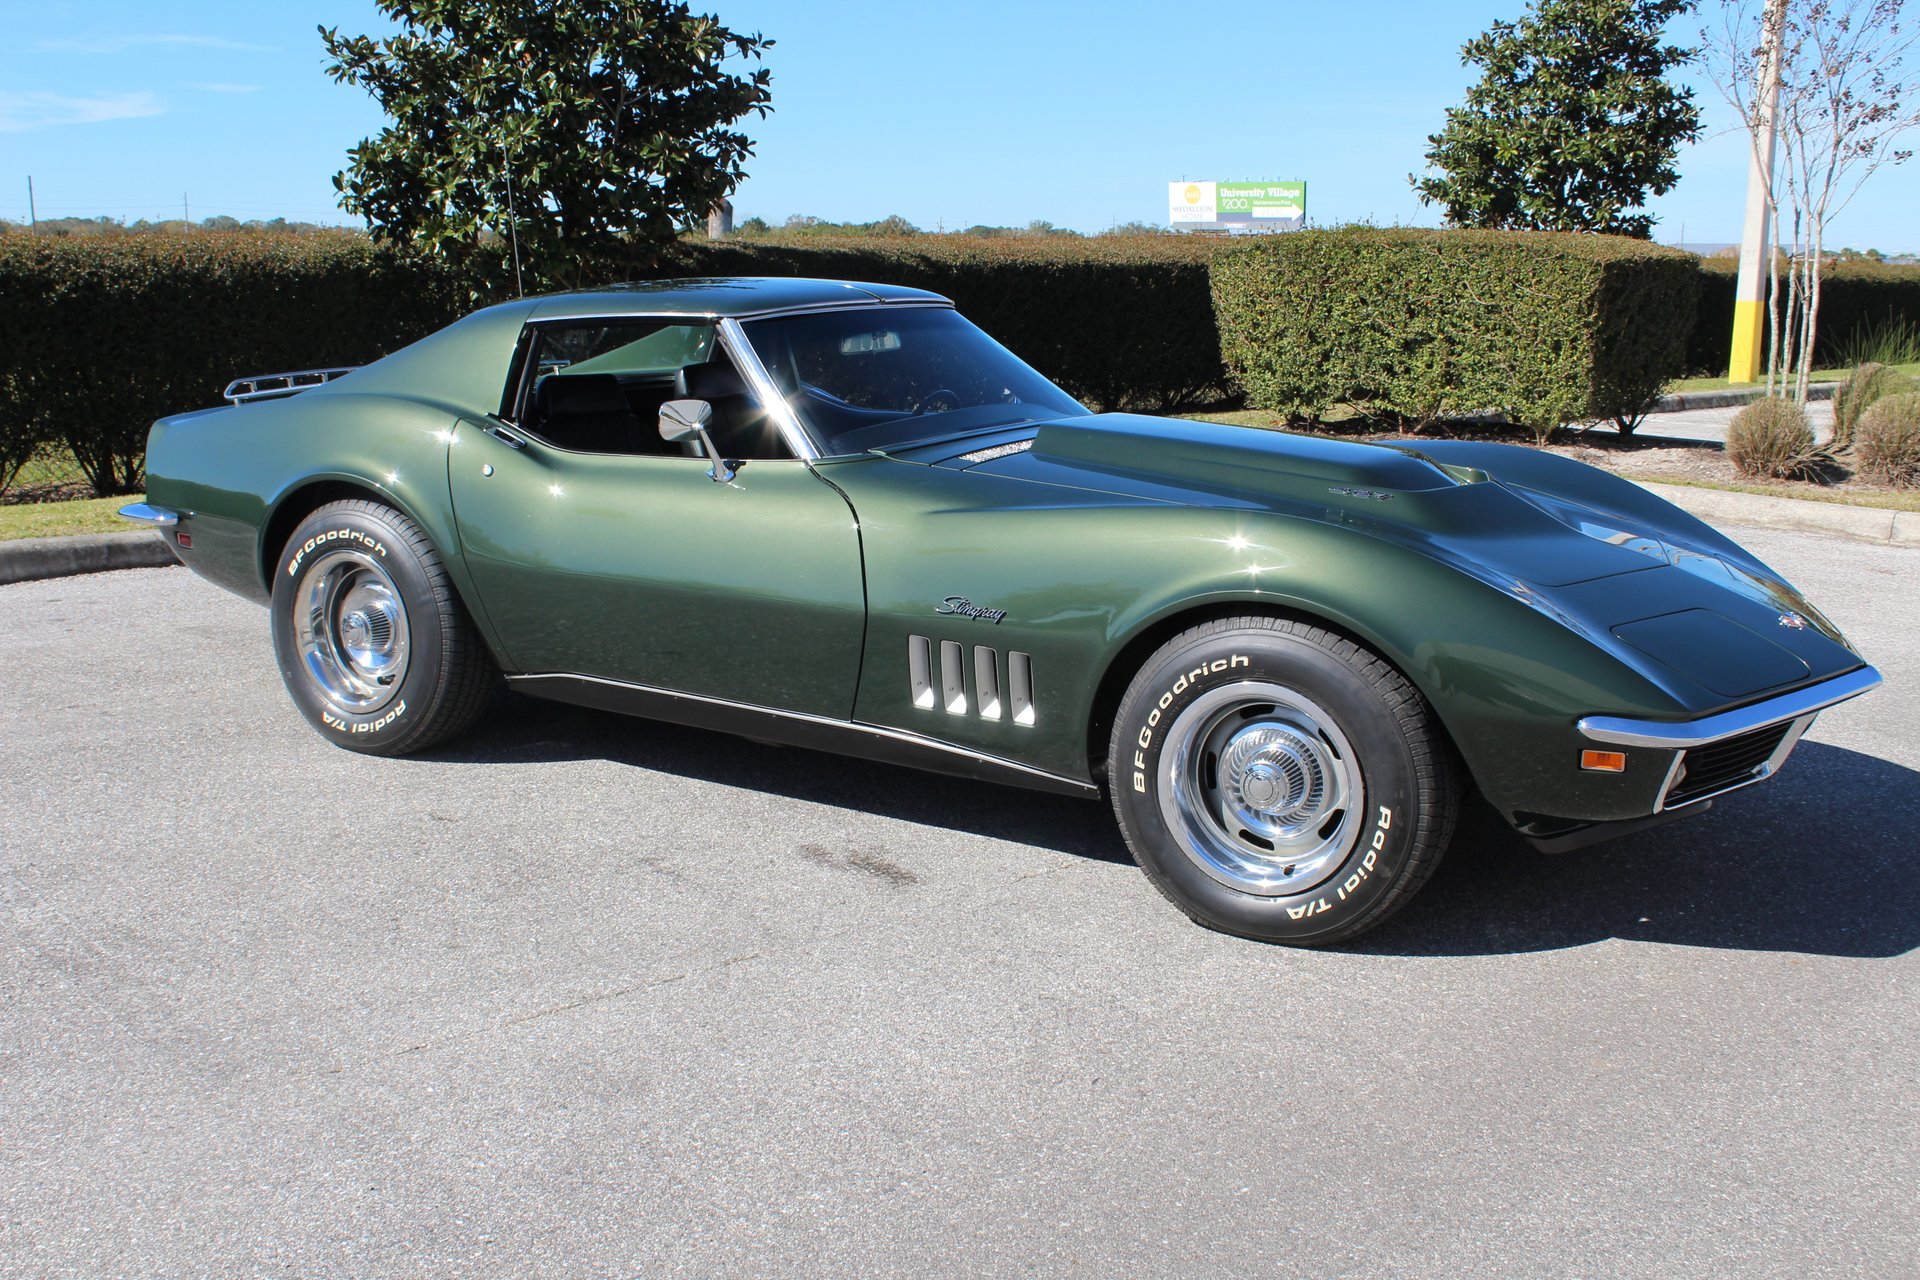 A Fathom Green 1969 Corvette, not necessarily the aforementioned Fathom Green 1969 Corvette.